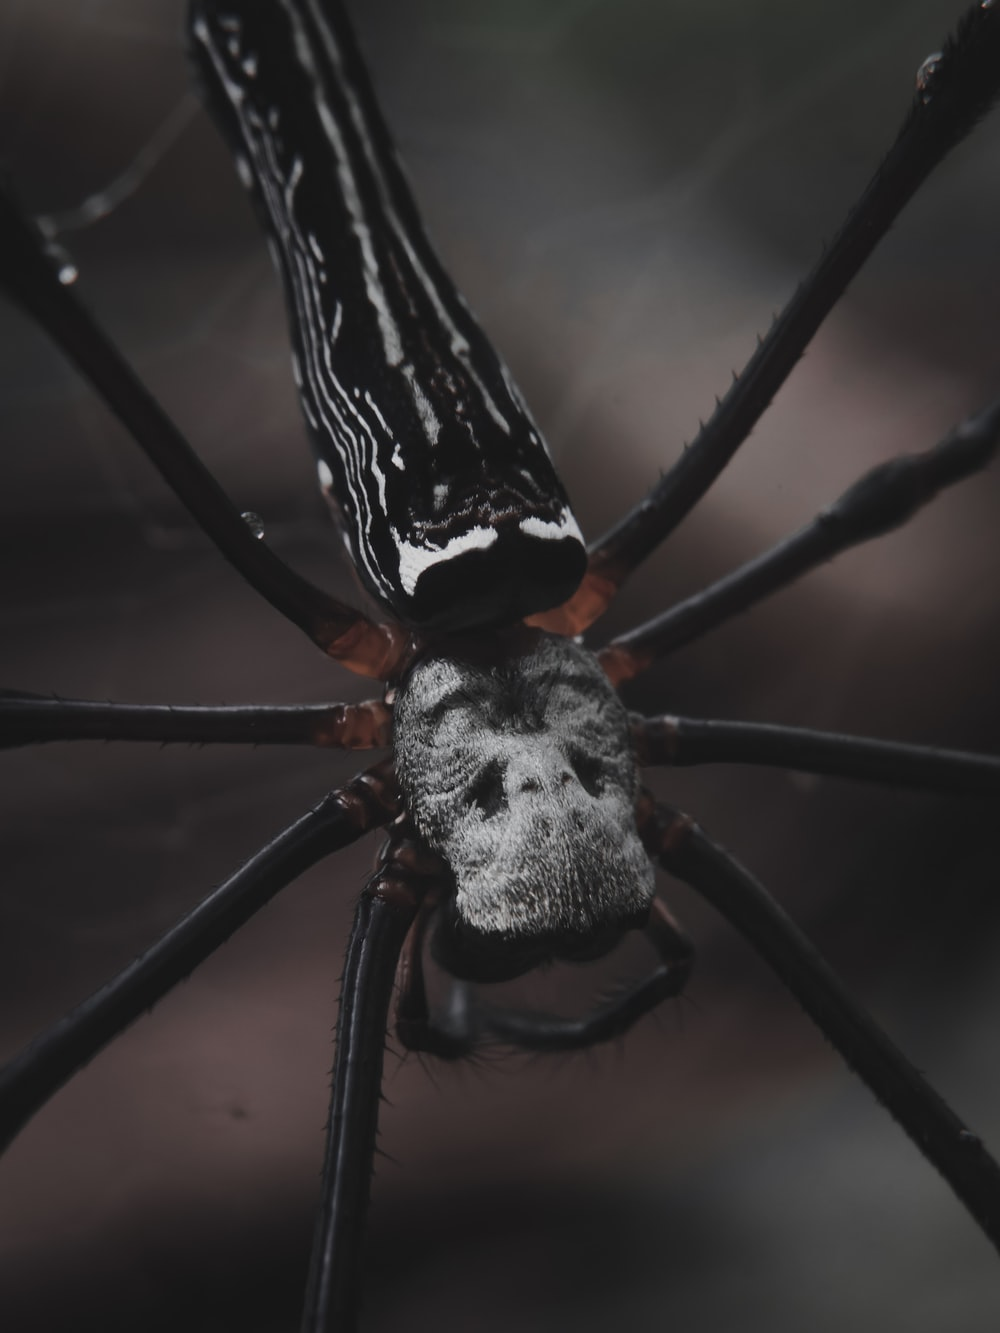 black and white spider on web in close up photography during daytime